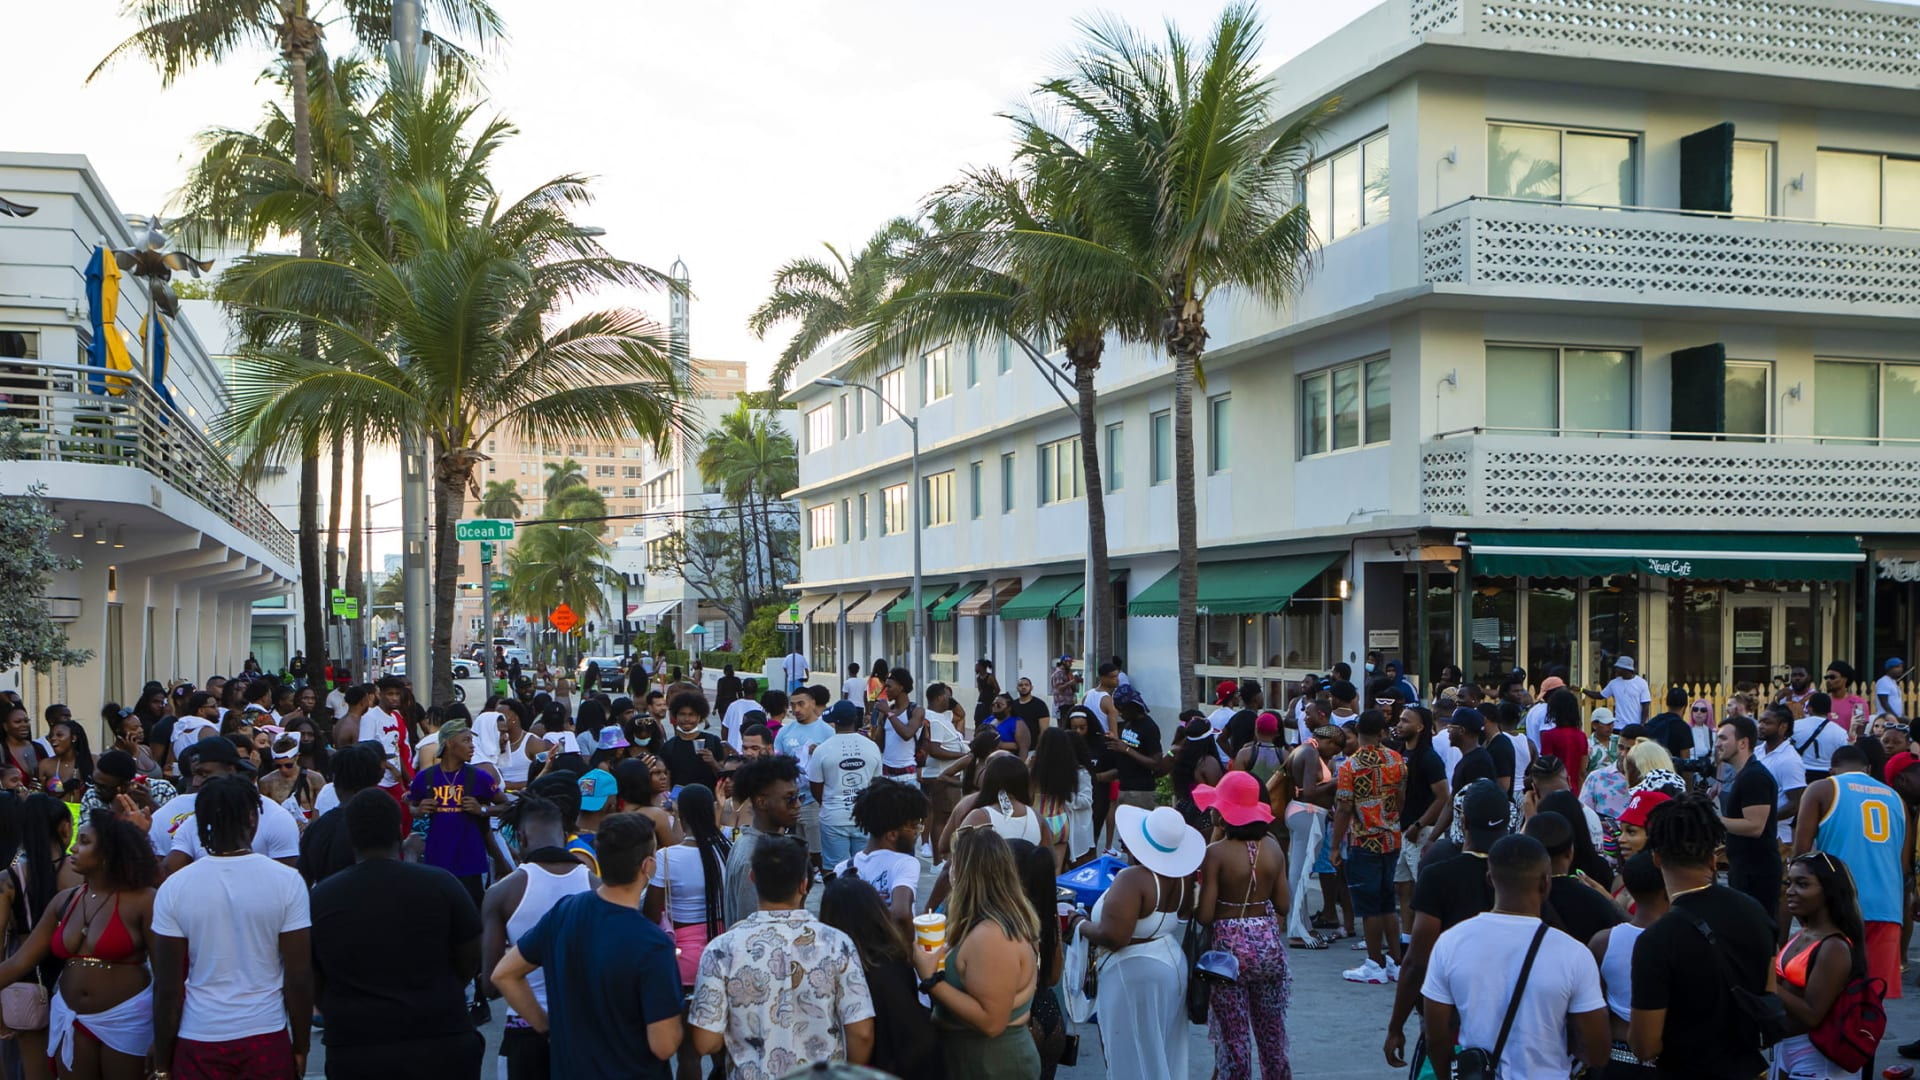 A crowd of people walk along Ocean Drive in the South Beach neighborhood of Miami on Saturday, March 27, 2021.